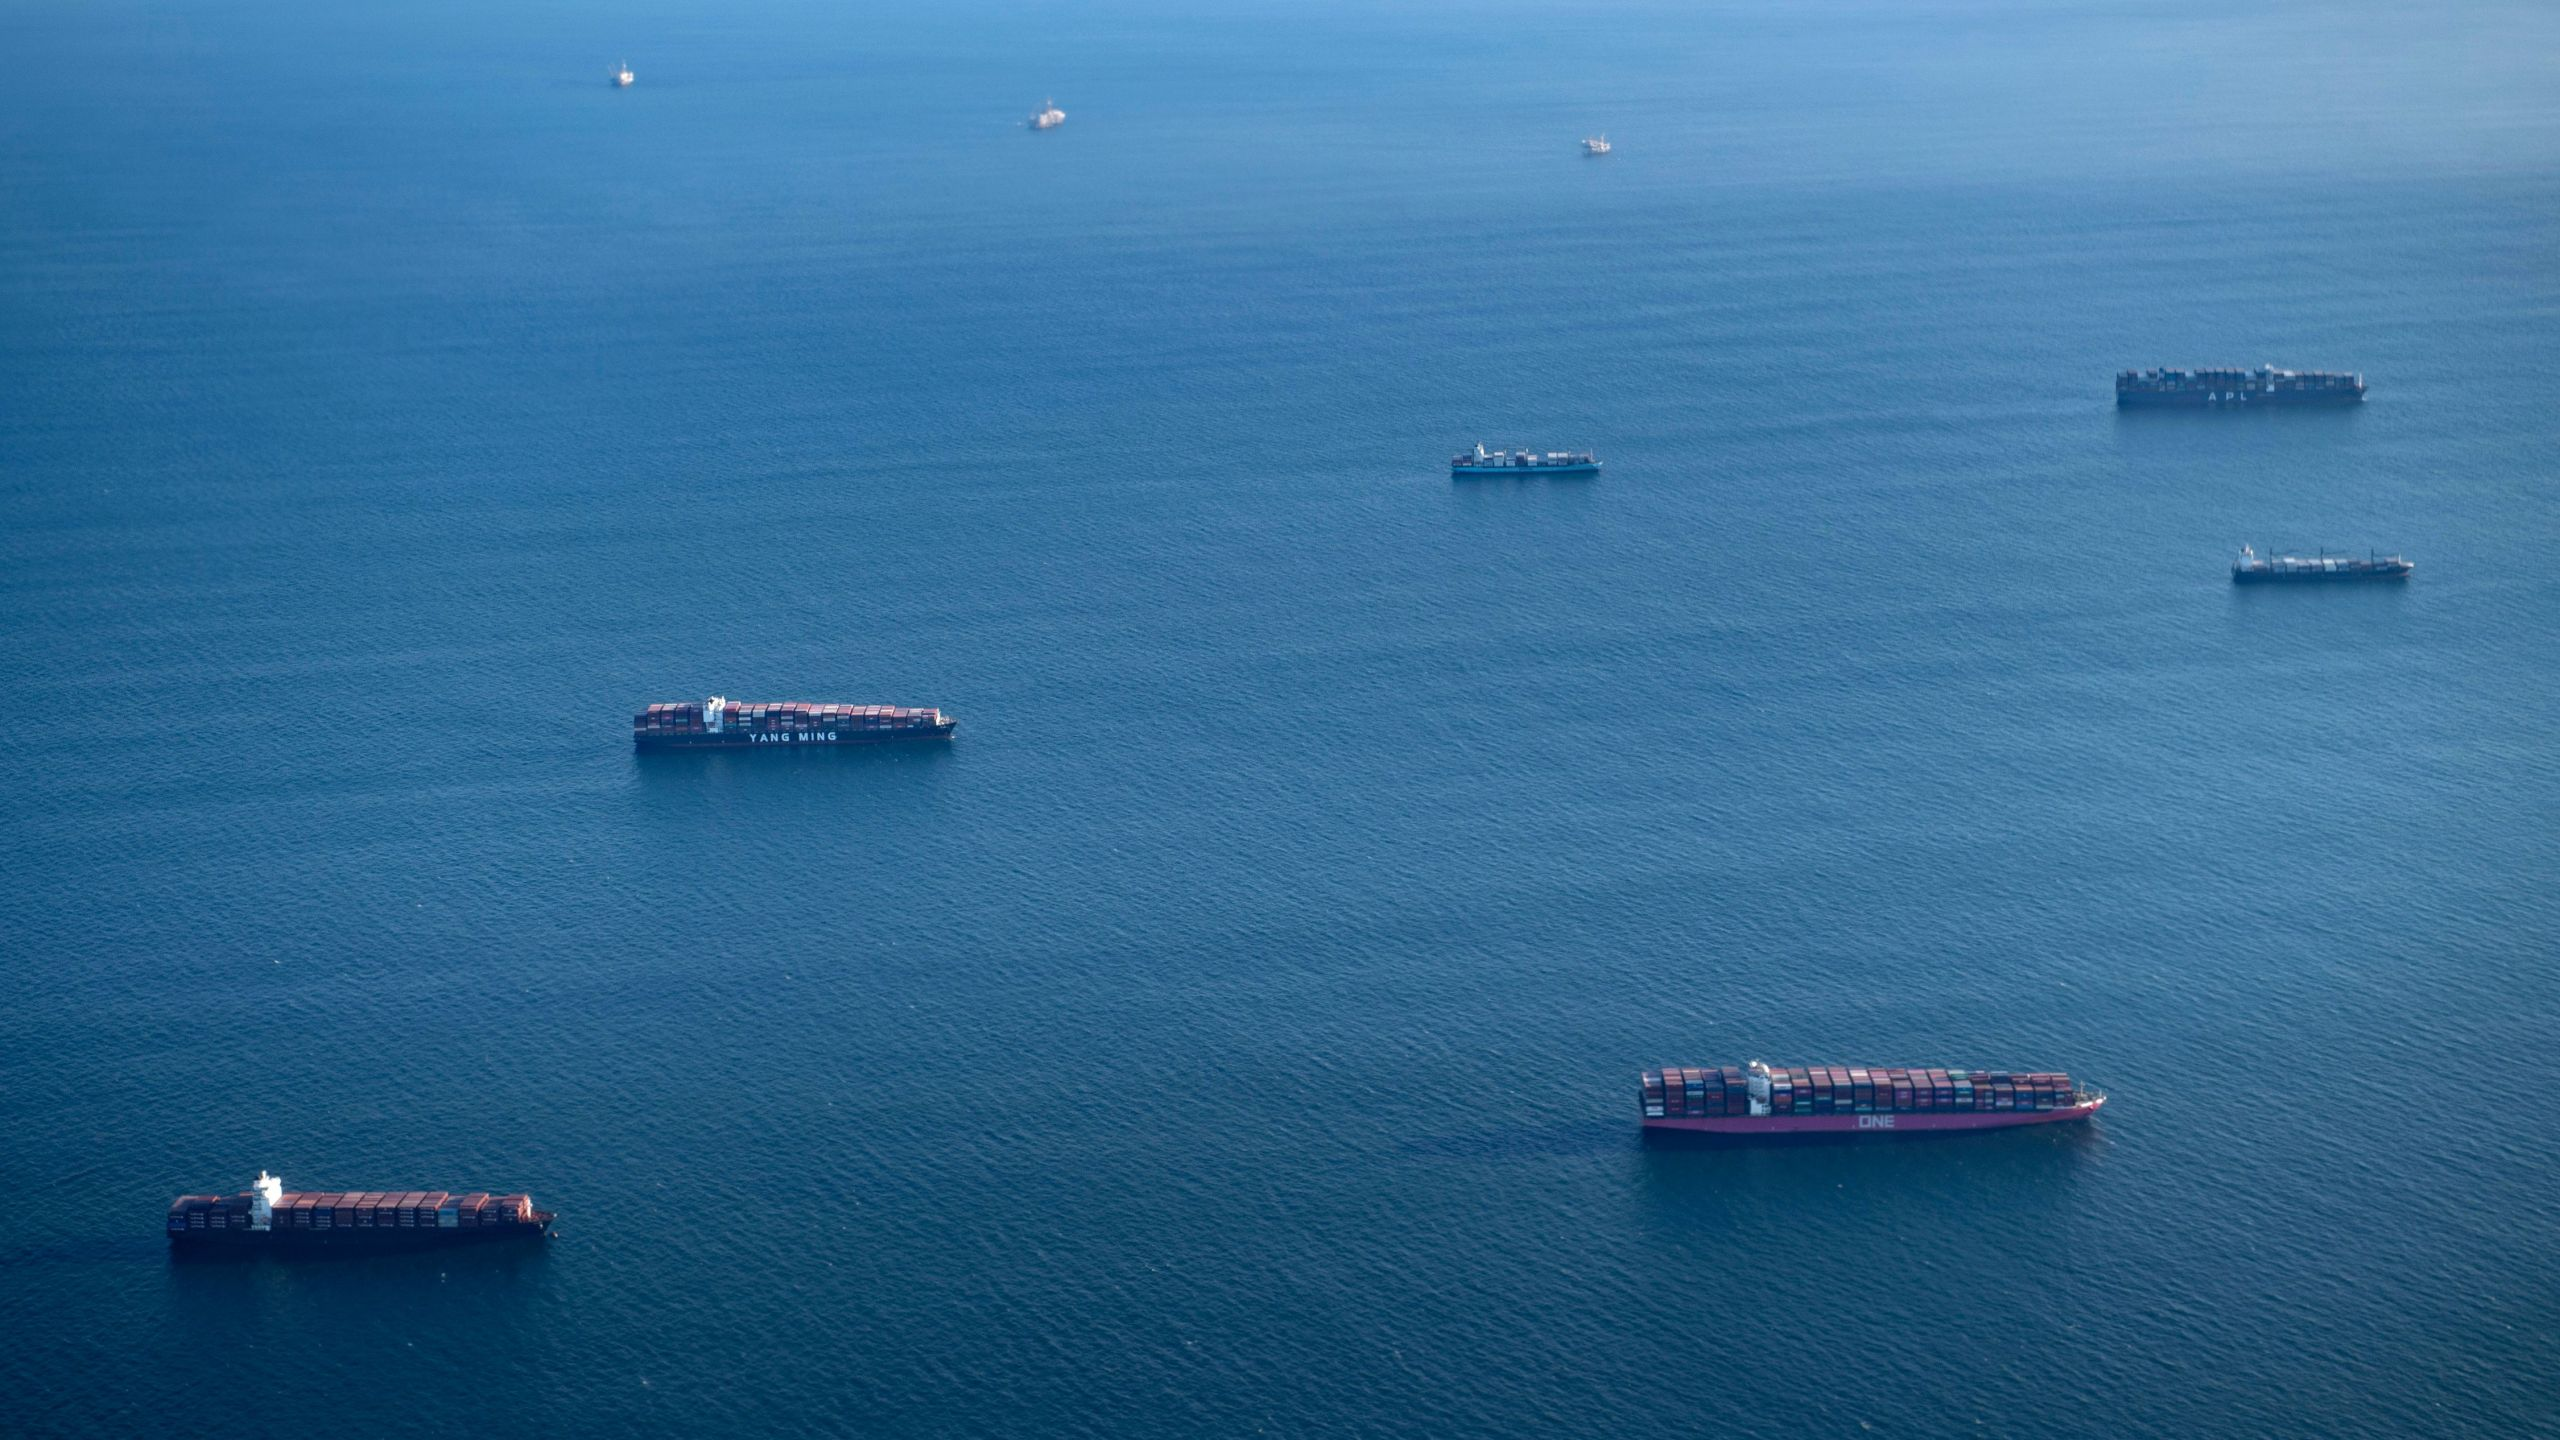 Cargo ships are seen of the port of Long Beach on Sept. 13, 2021, (BRENDAN SMIALOWSKI/AFP via Getty Images)